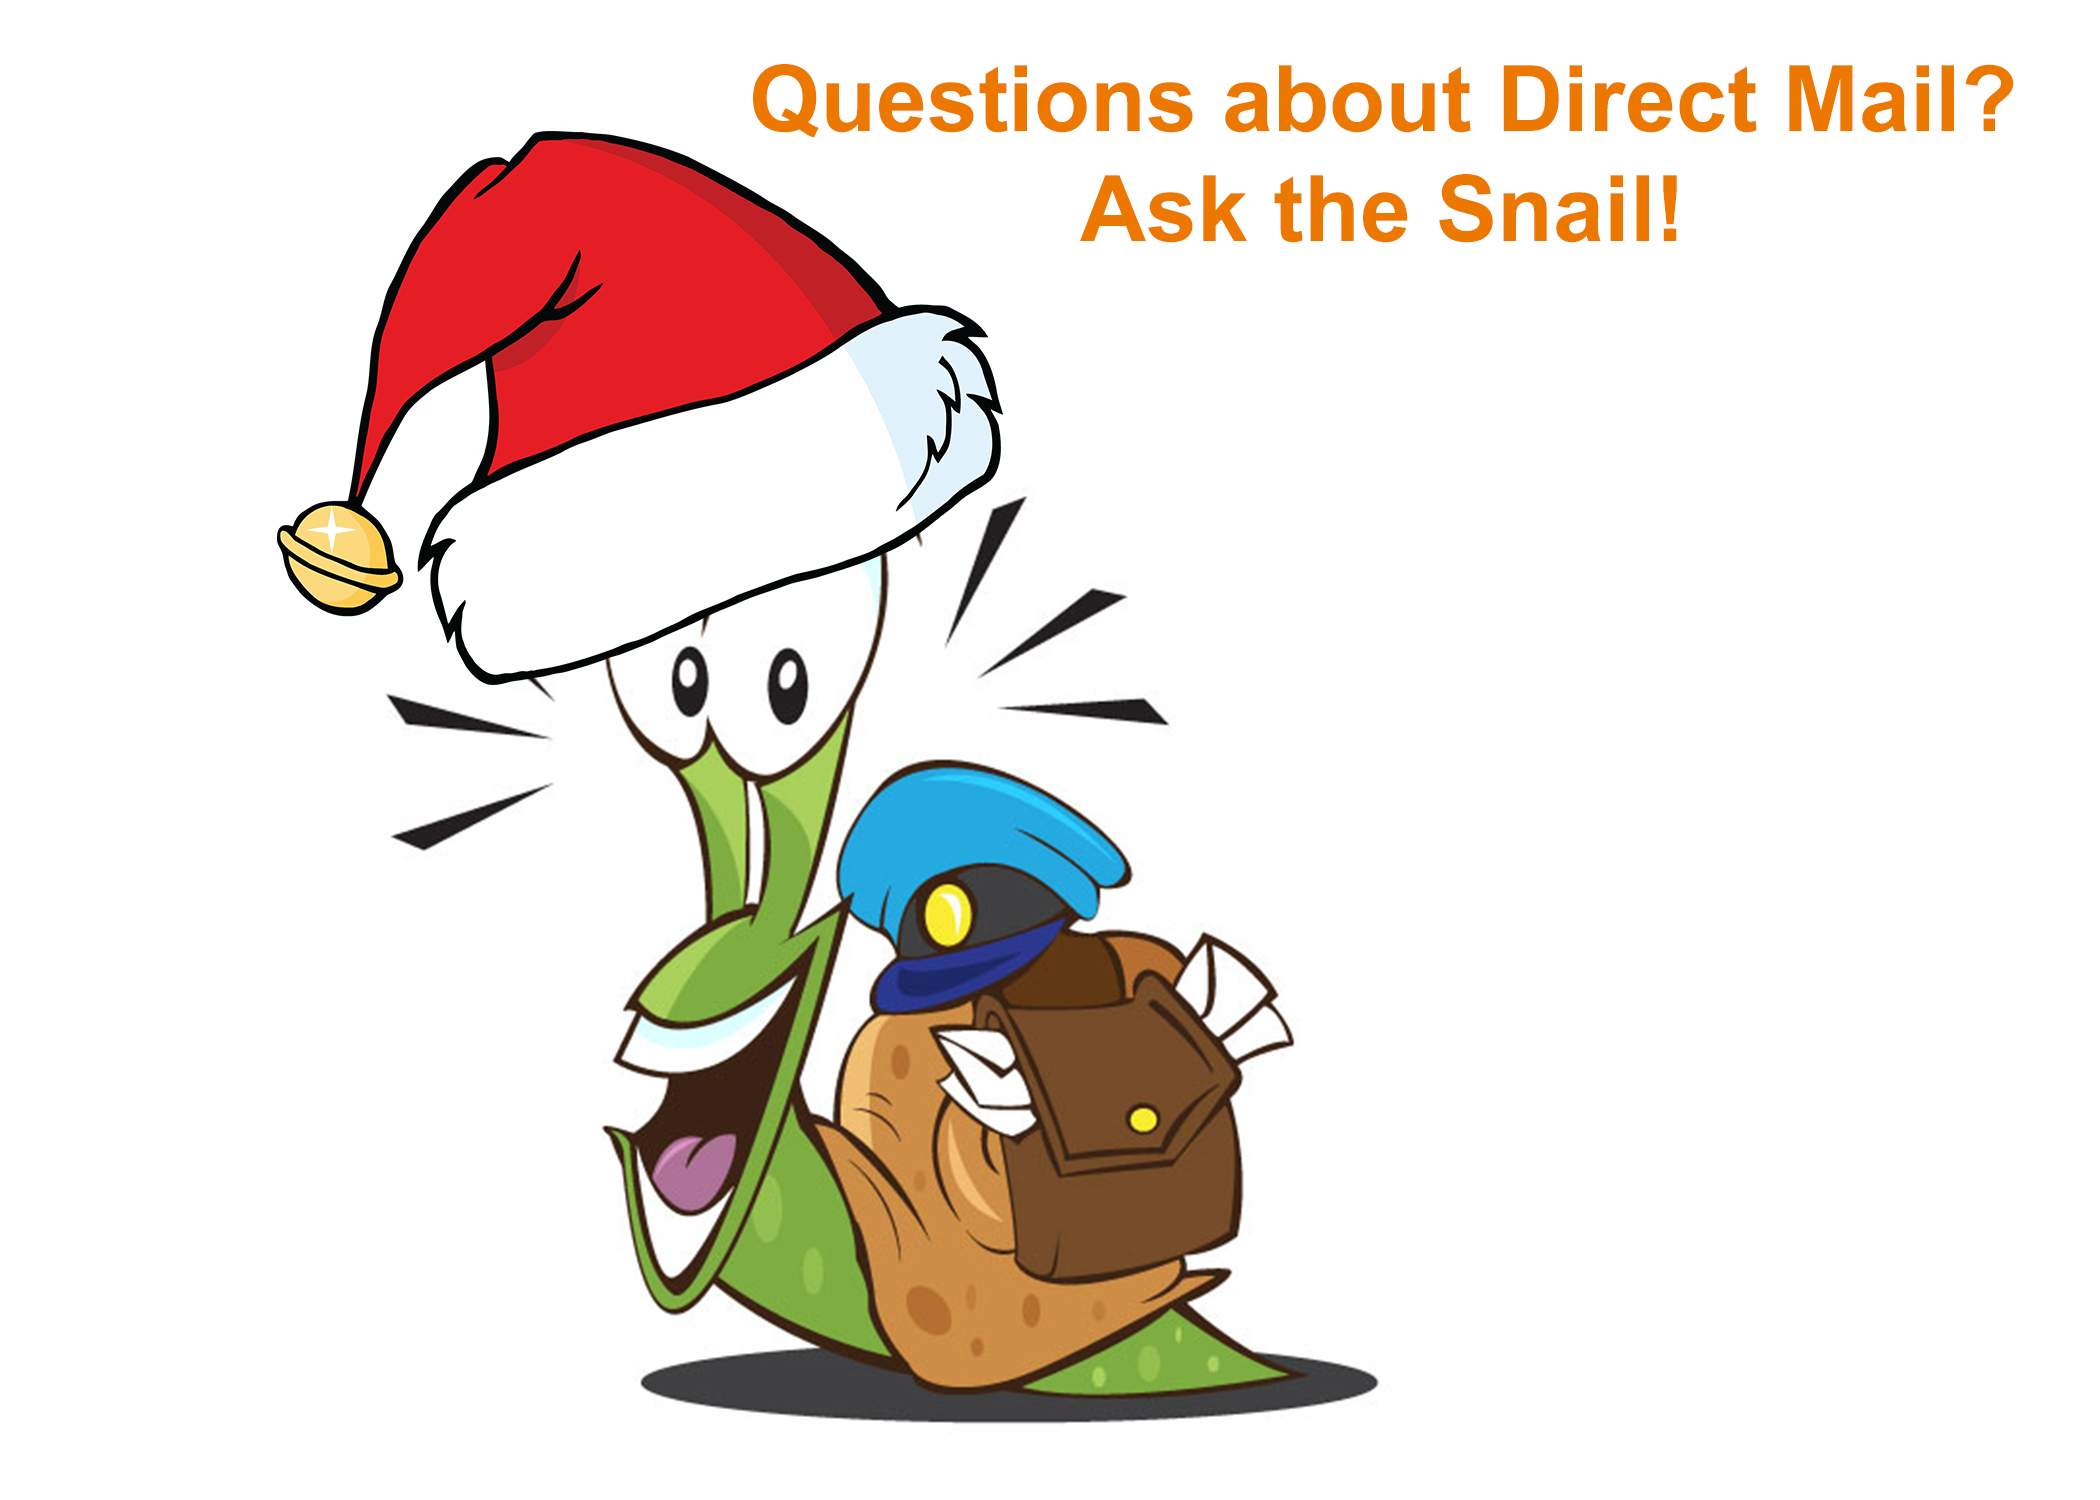 Ask the Snail! Hopeful for the Holidays